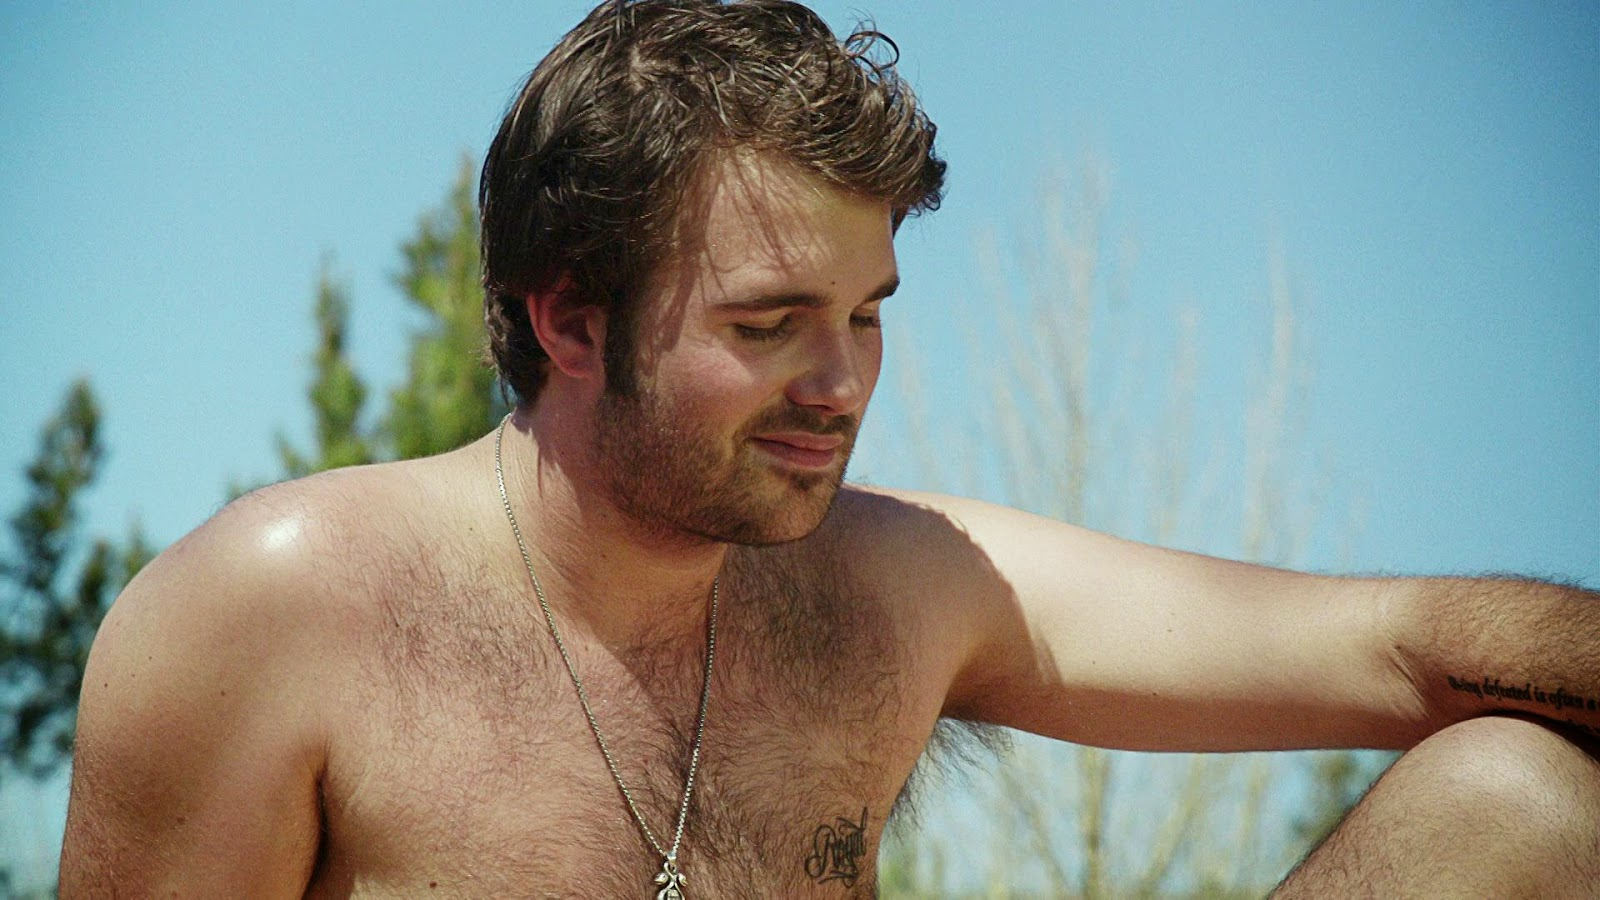 hutch dano naked pictures